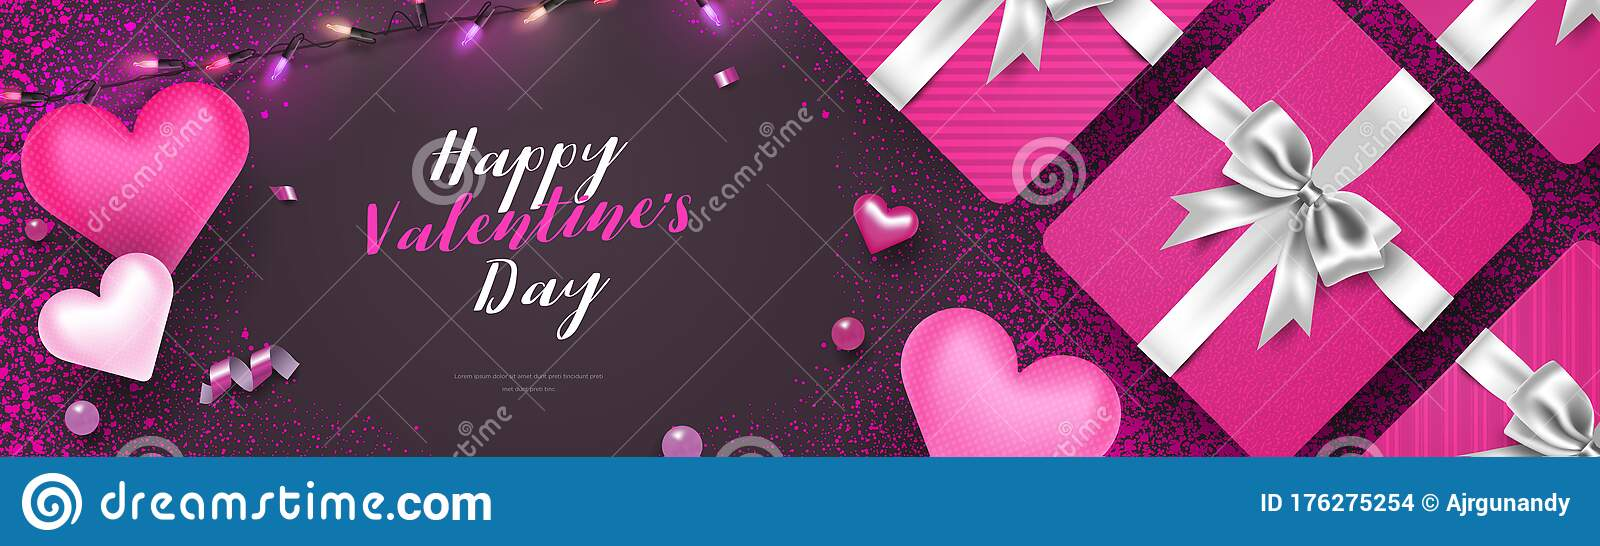 3d Beautiful Valentine S Day Horizontal Background Cover Illustration With Gift Box Hearts Confetti And String Lights Vector Tem Stock Vector Illustration Of Header Beautiful 176275254